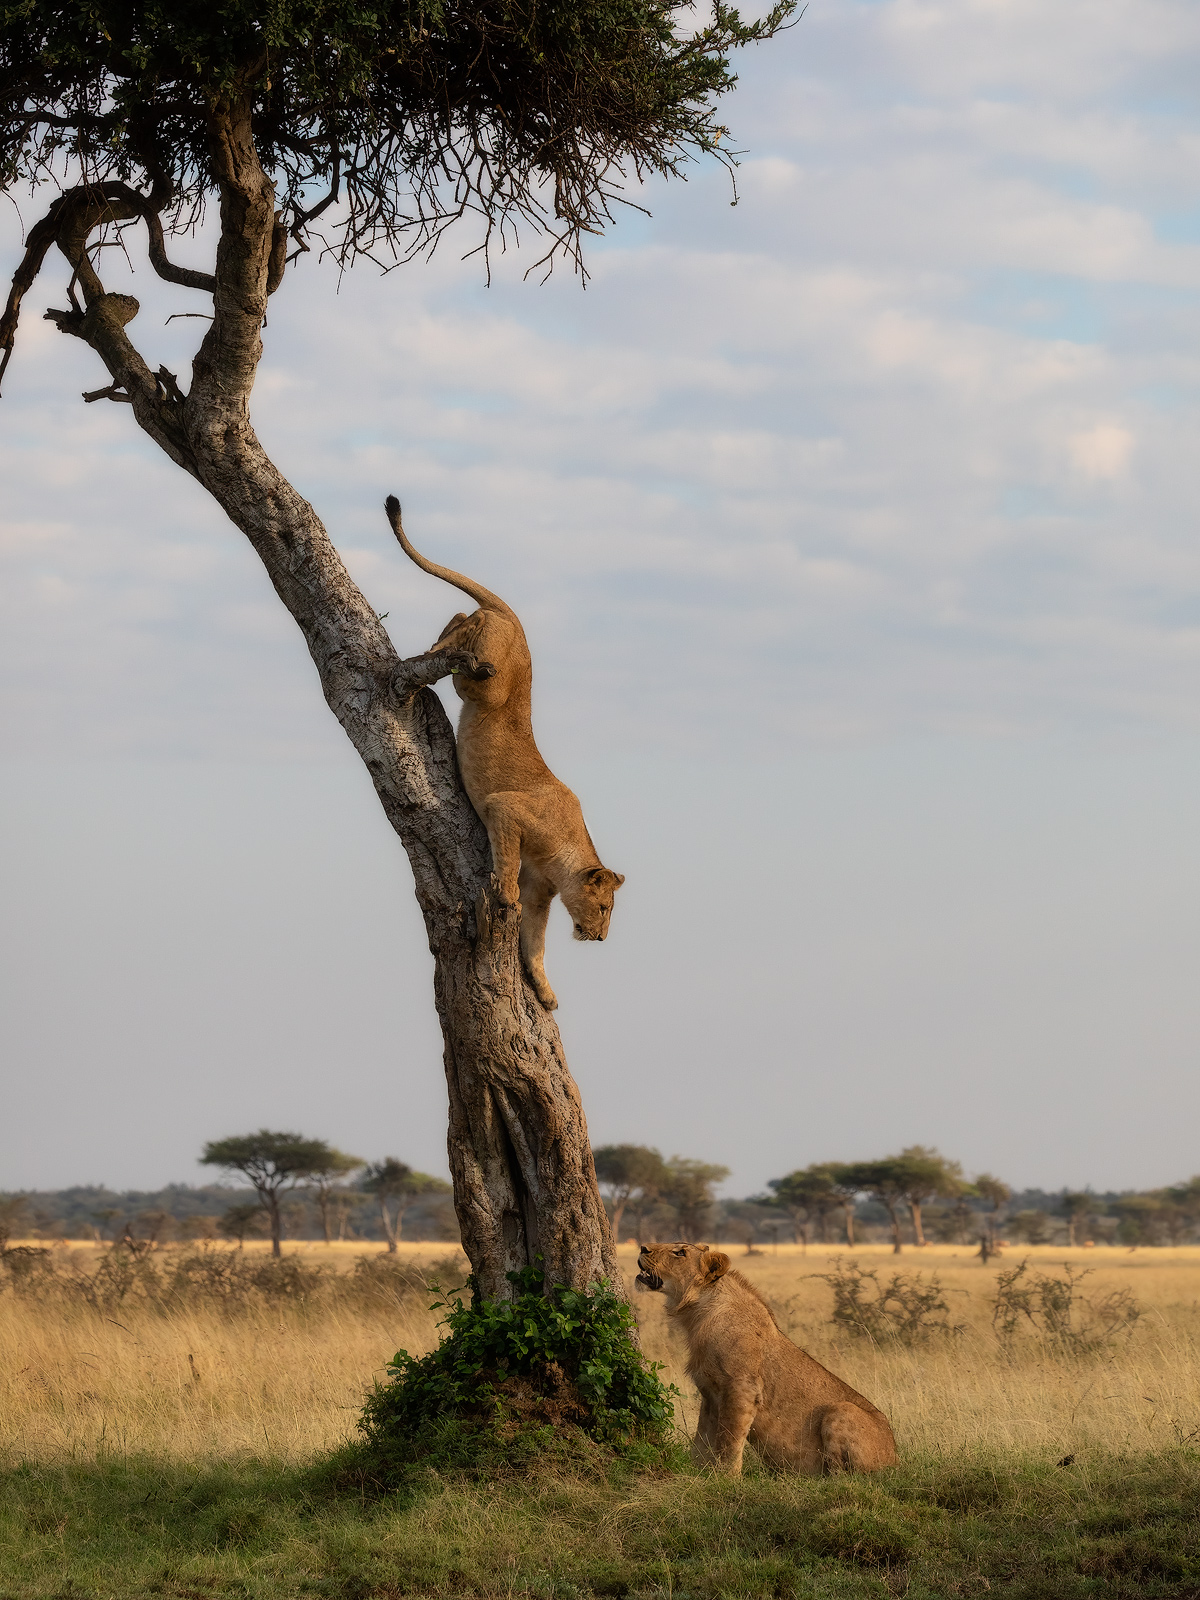 Two lions playing a game of cat and mouse in the plains of the Masai Mara.